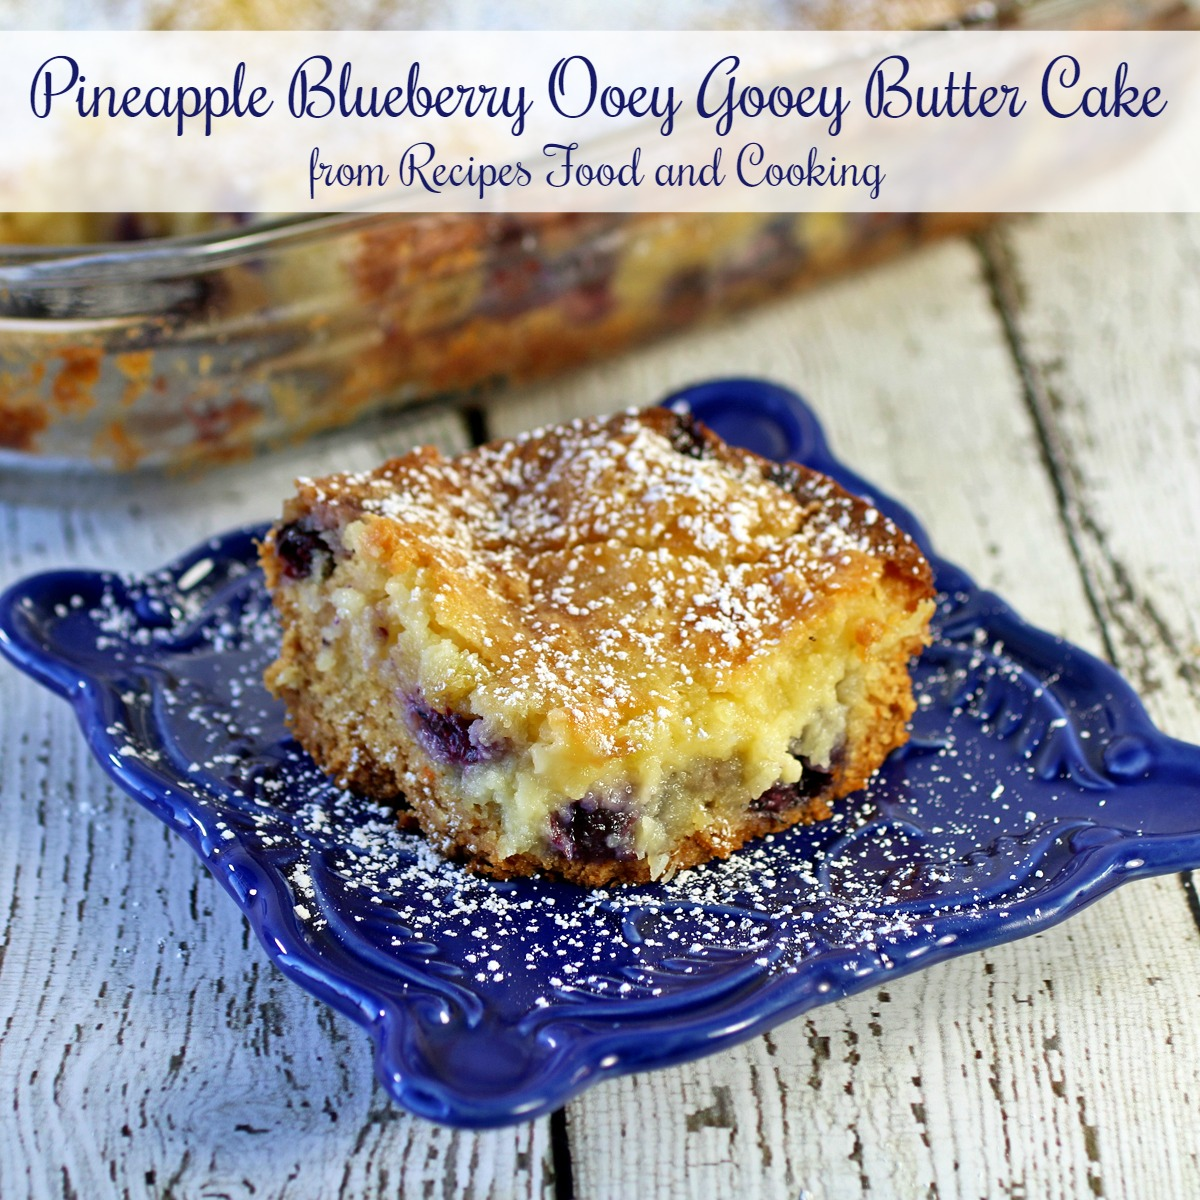 Southern Pineapple Layer Cake Recipes: Sweet Cherries Ooey Gooey Butter Cake